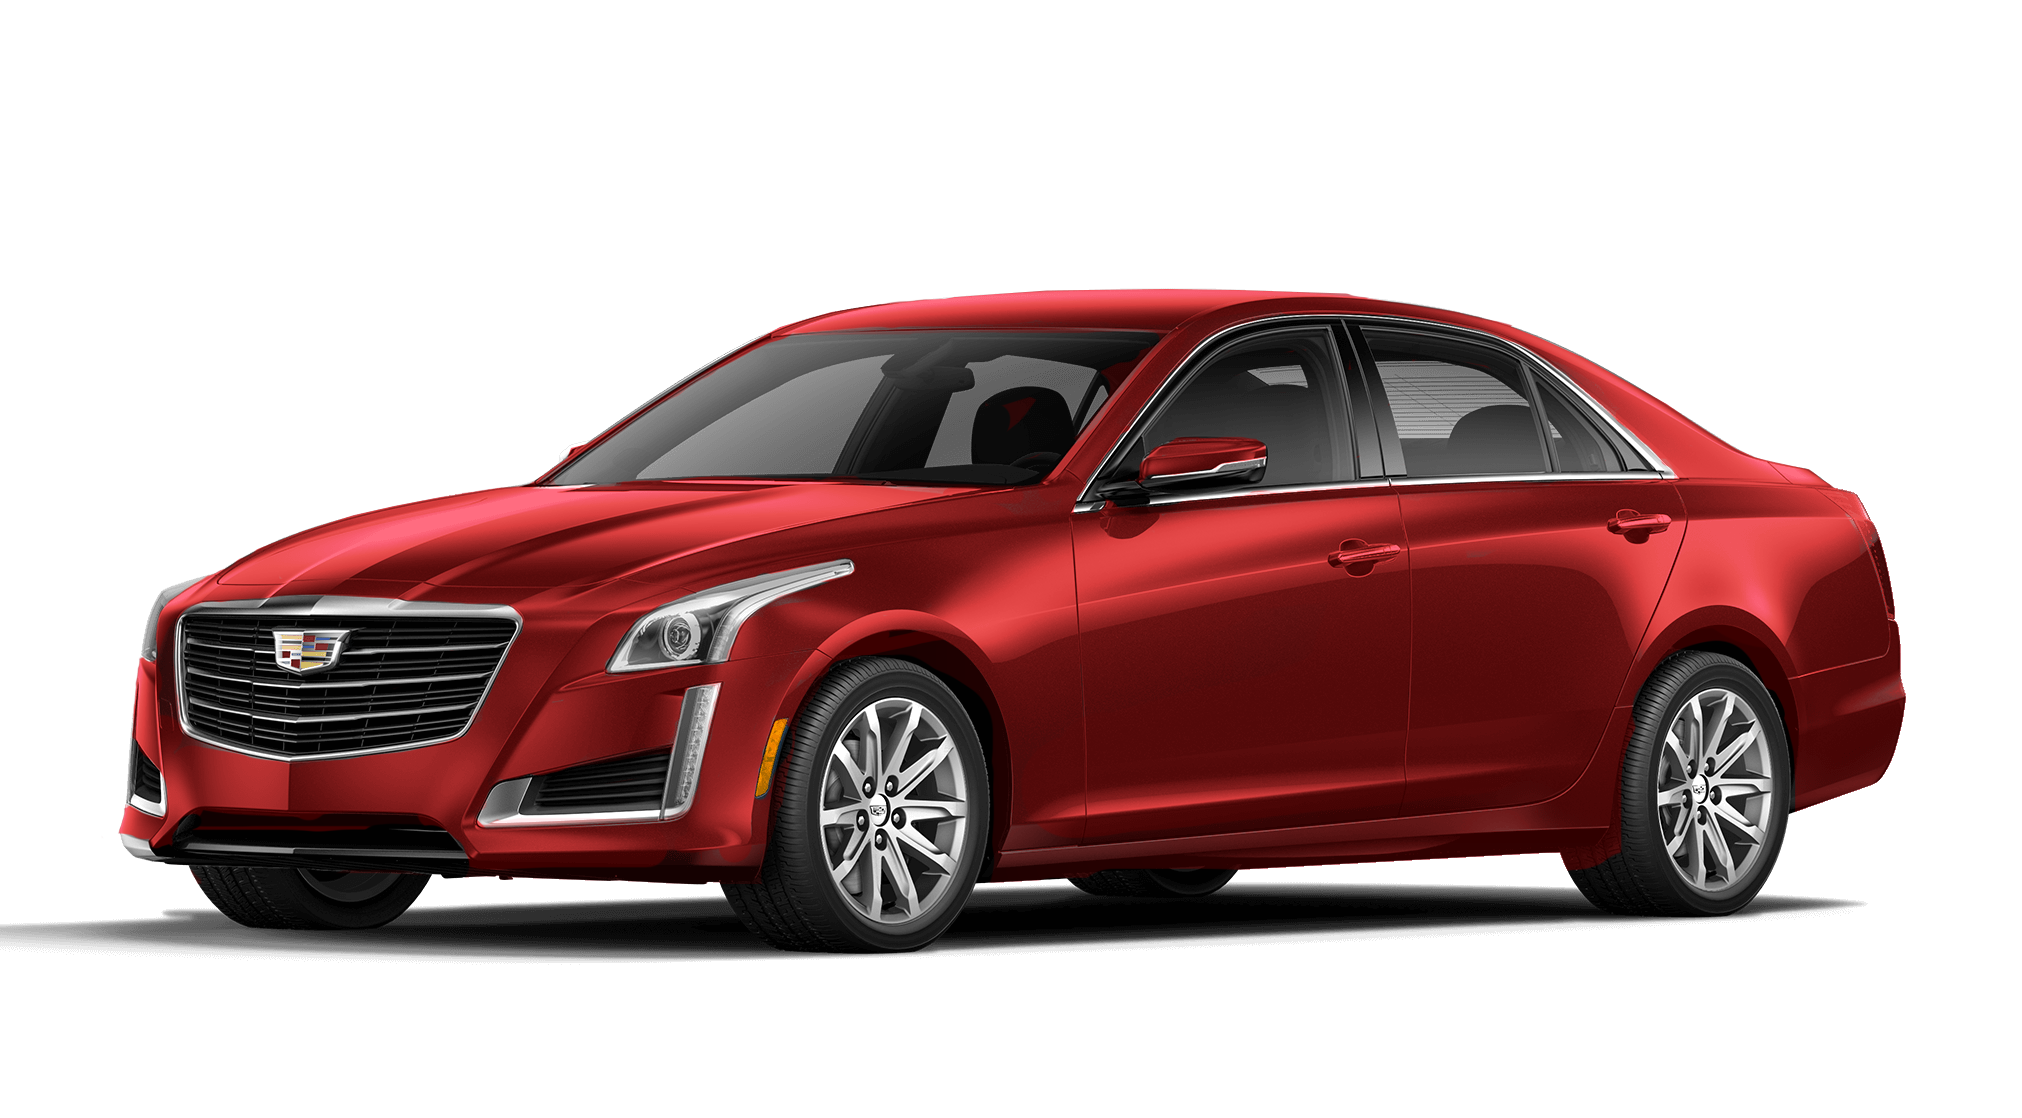 Red Obsession Cadillac CTS